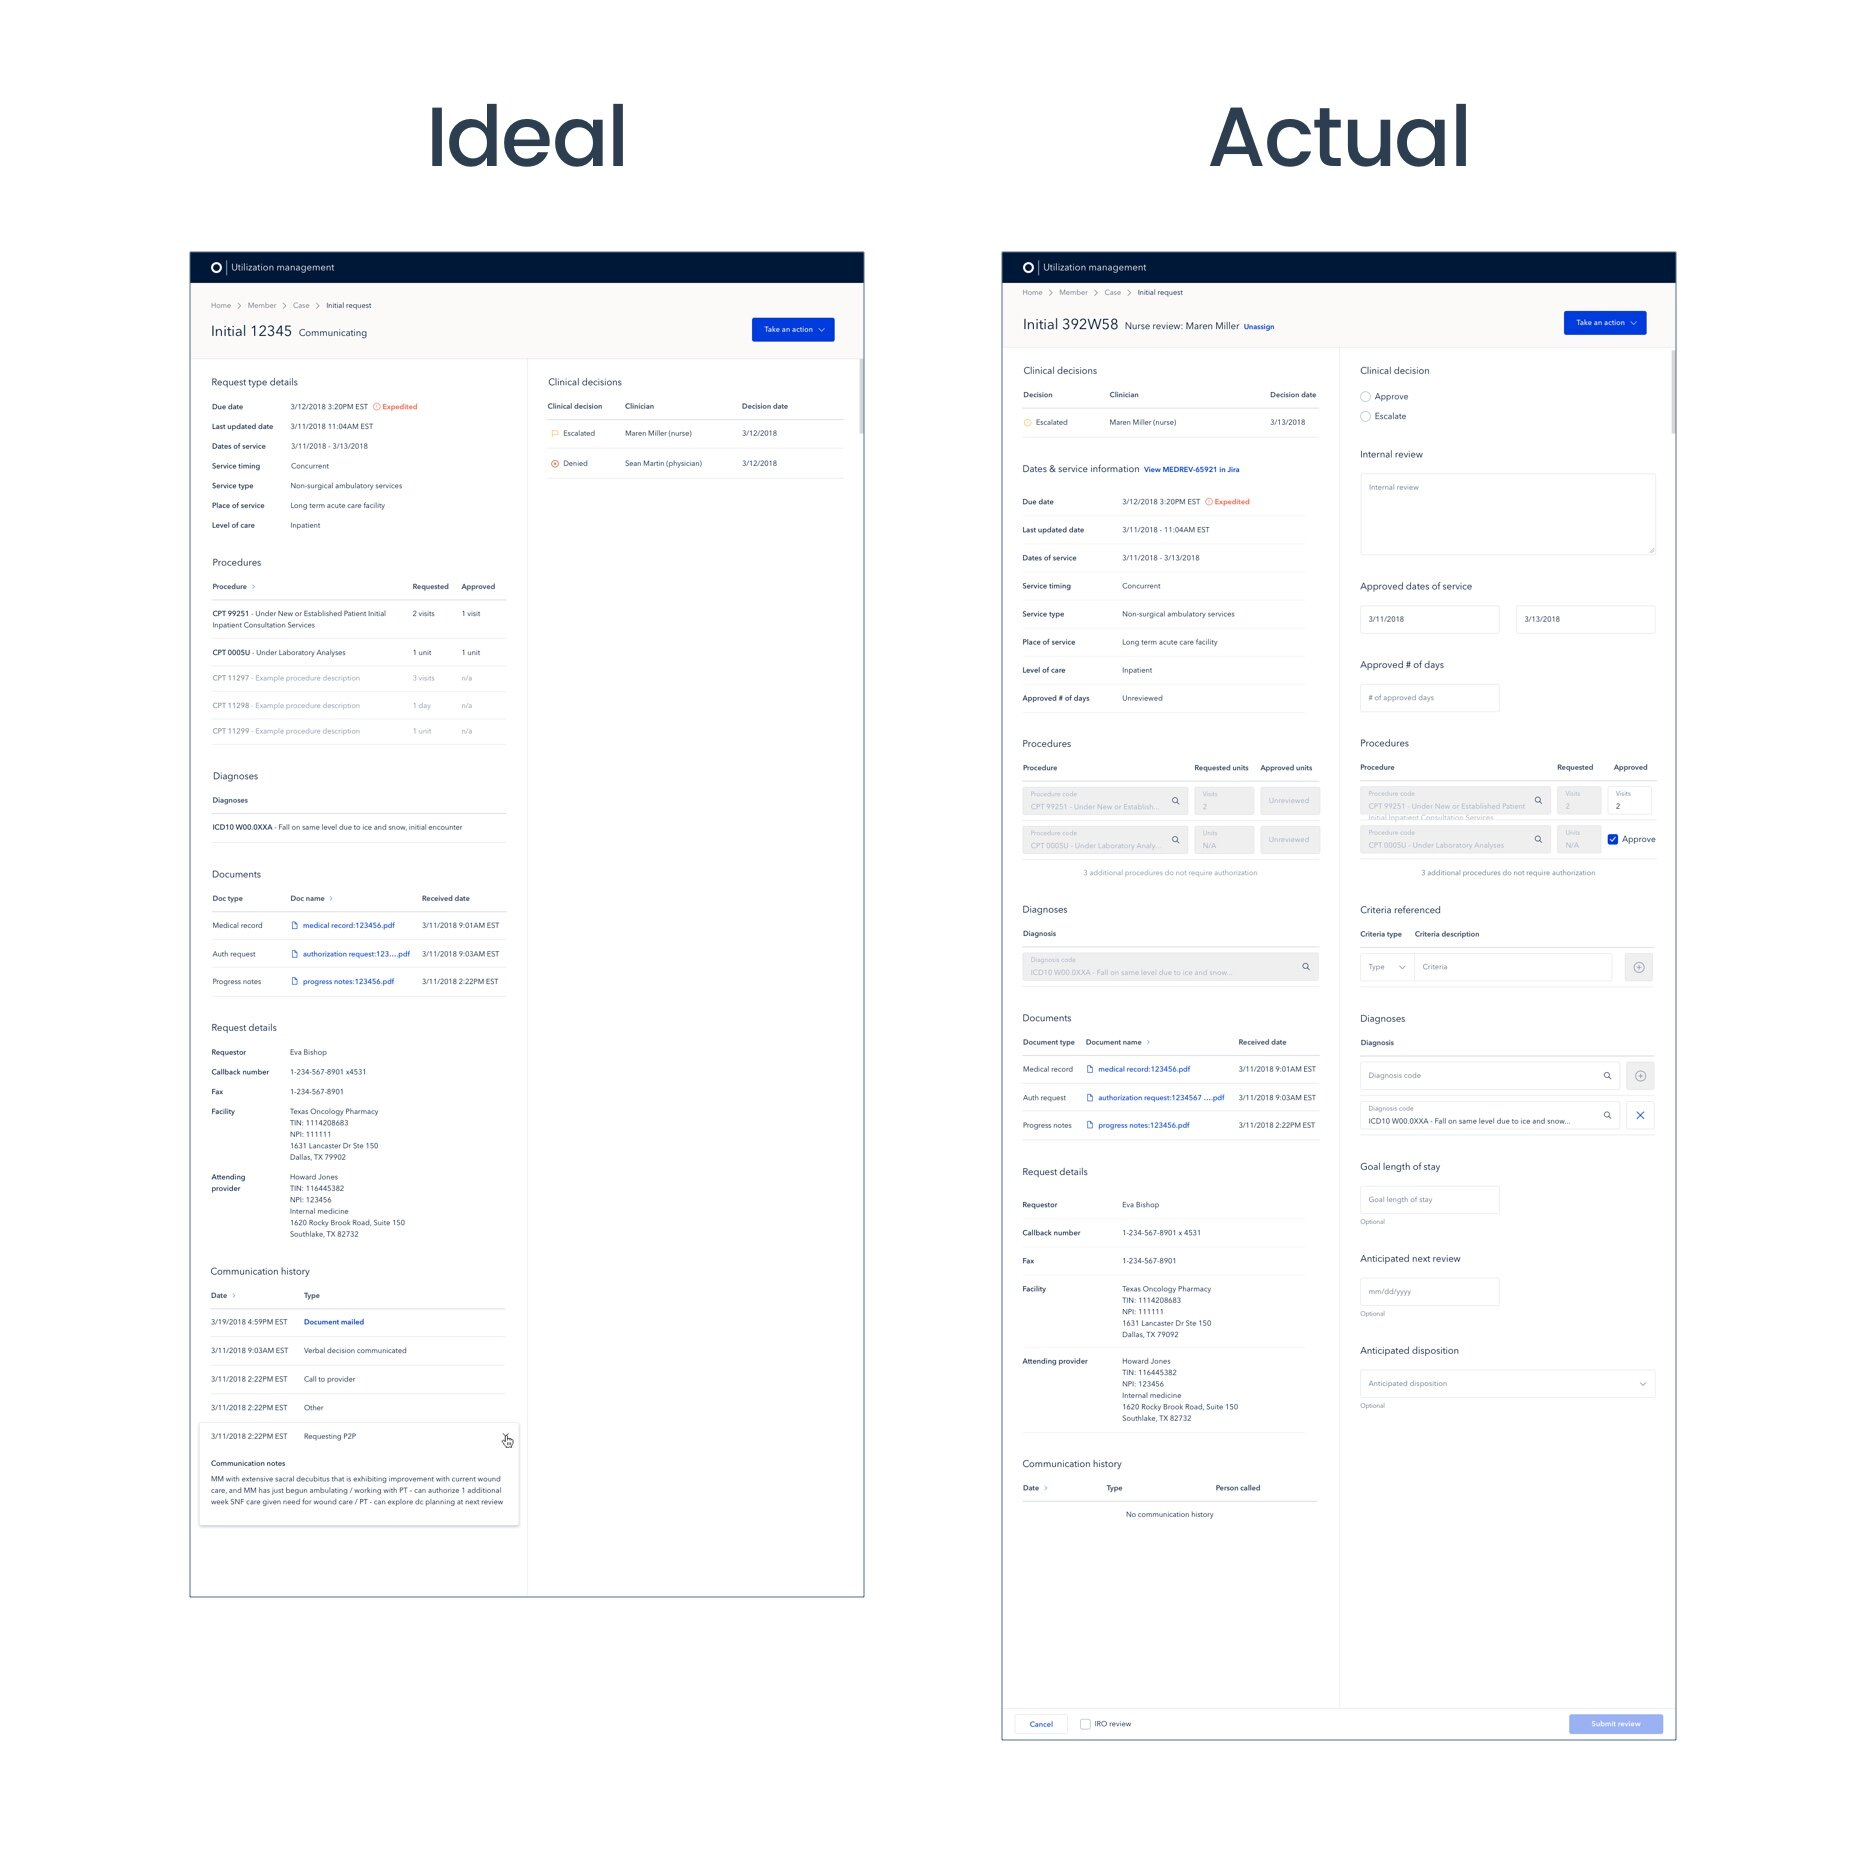 The ideal read-only version of the Request page (left) as compared to the actual, easier to build version of the Request page (right). Given the limited engineering resources we had, we opted for the easier, quicker path in this scenario.